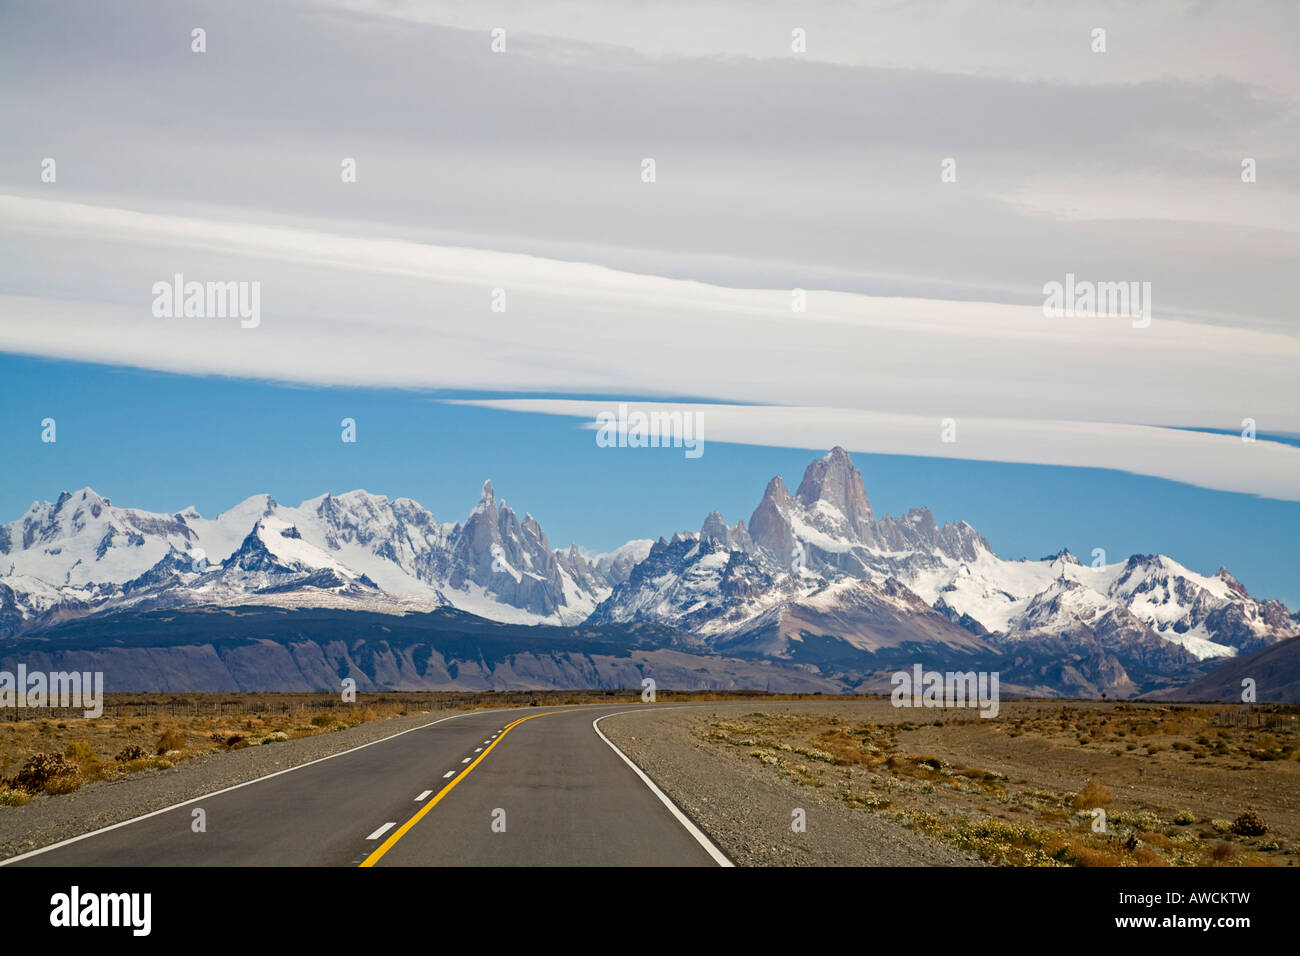 Road Ruta 40 to the Fitz Roy massiv, Argentinia, Patagonia, South America - Stock Image